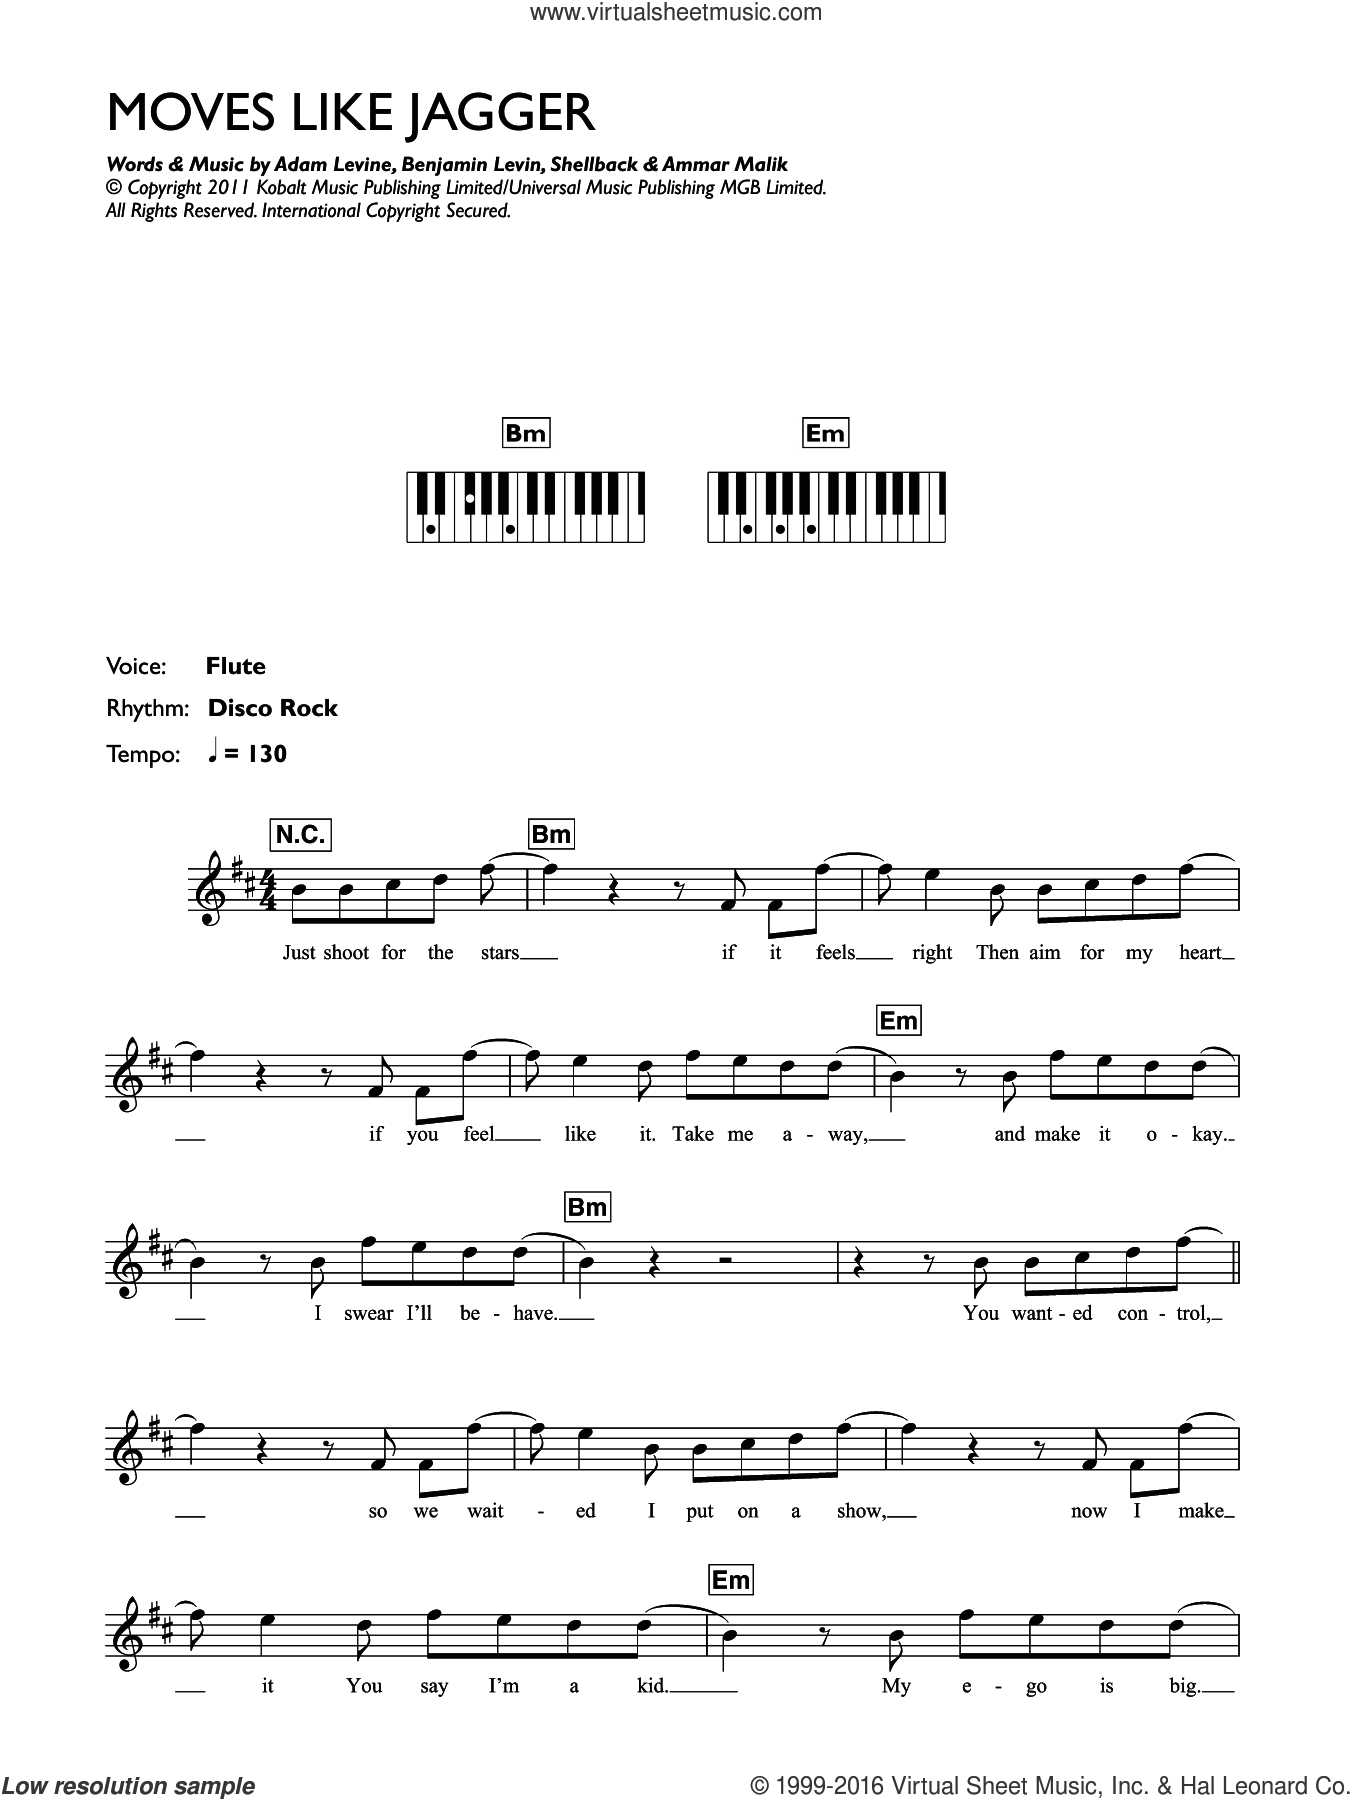 Moves Like Jagger (featuring Christina Aguilera) sheet music for piano solo (chords, lyrics, melody) by Maroon 5, Christina Aguilera, Adam Levine, Ammar Malik, Benjamin Levin and Shellback. Score Image Preview.